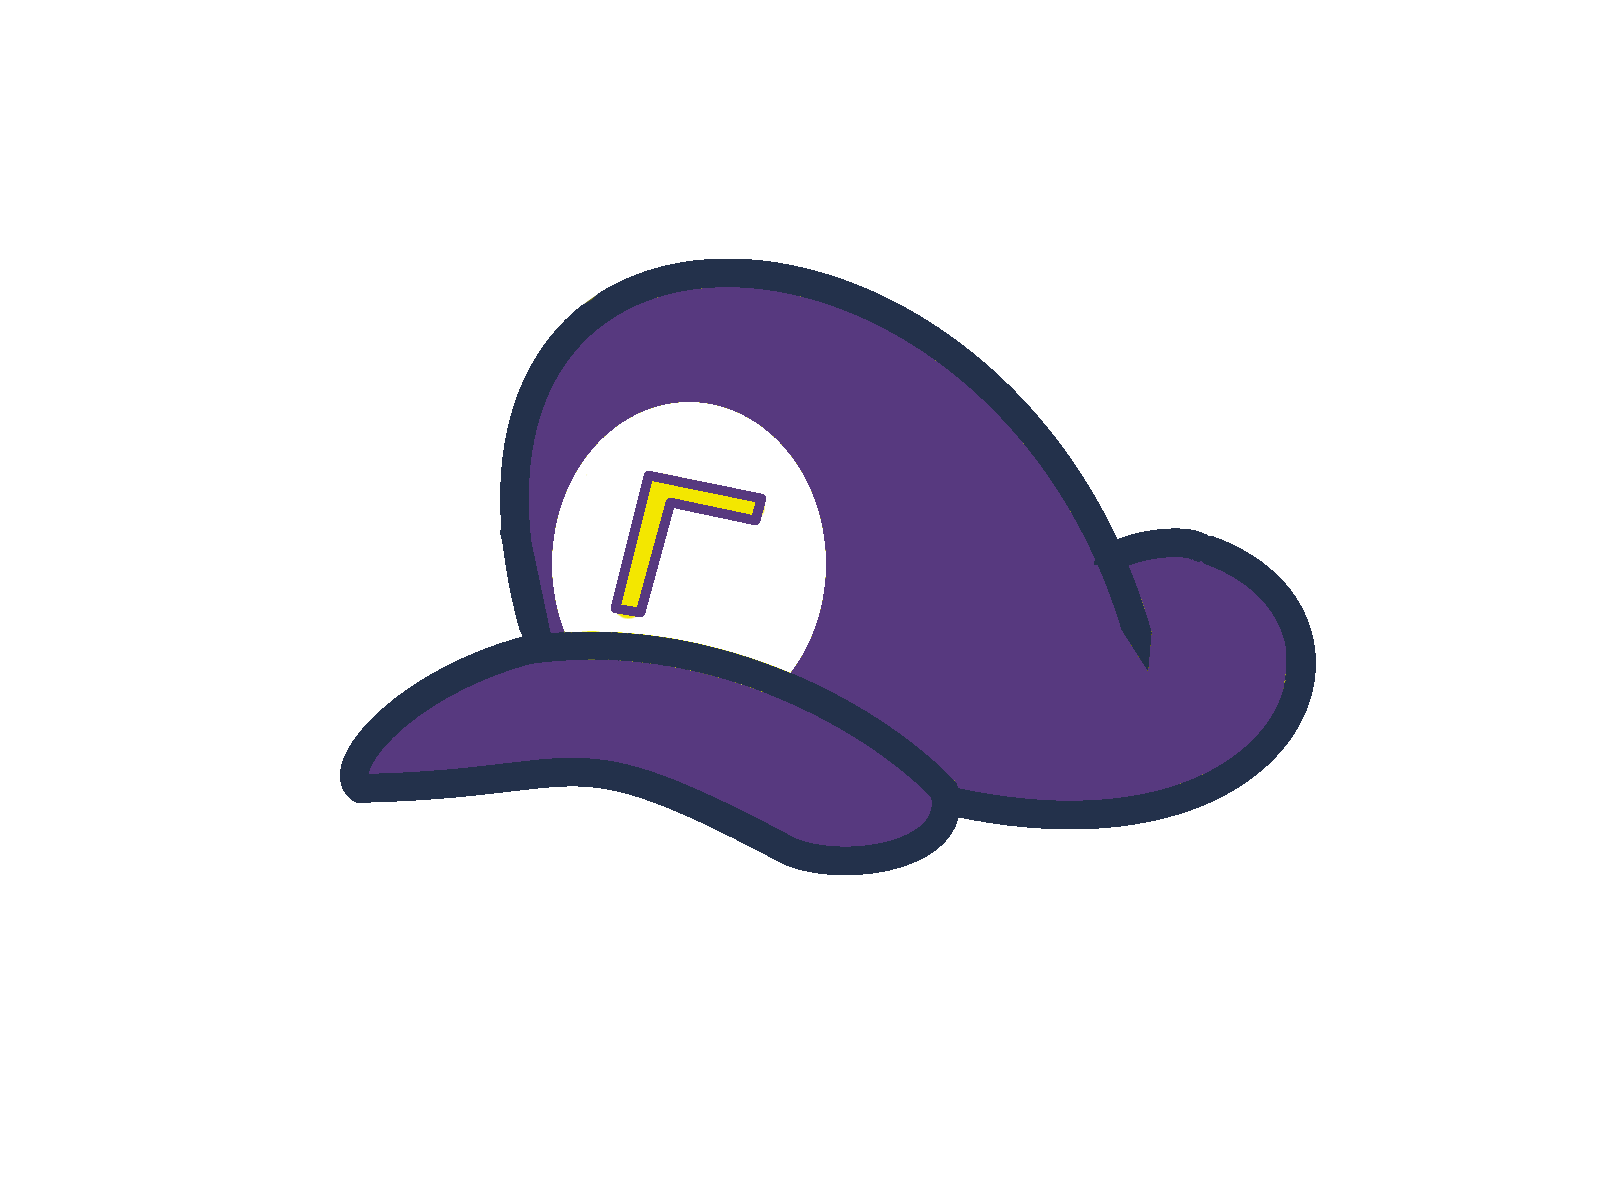 Waluigi's hat in the s... Youtube Icon Png Transparent